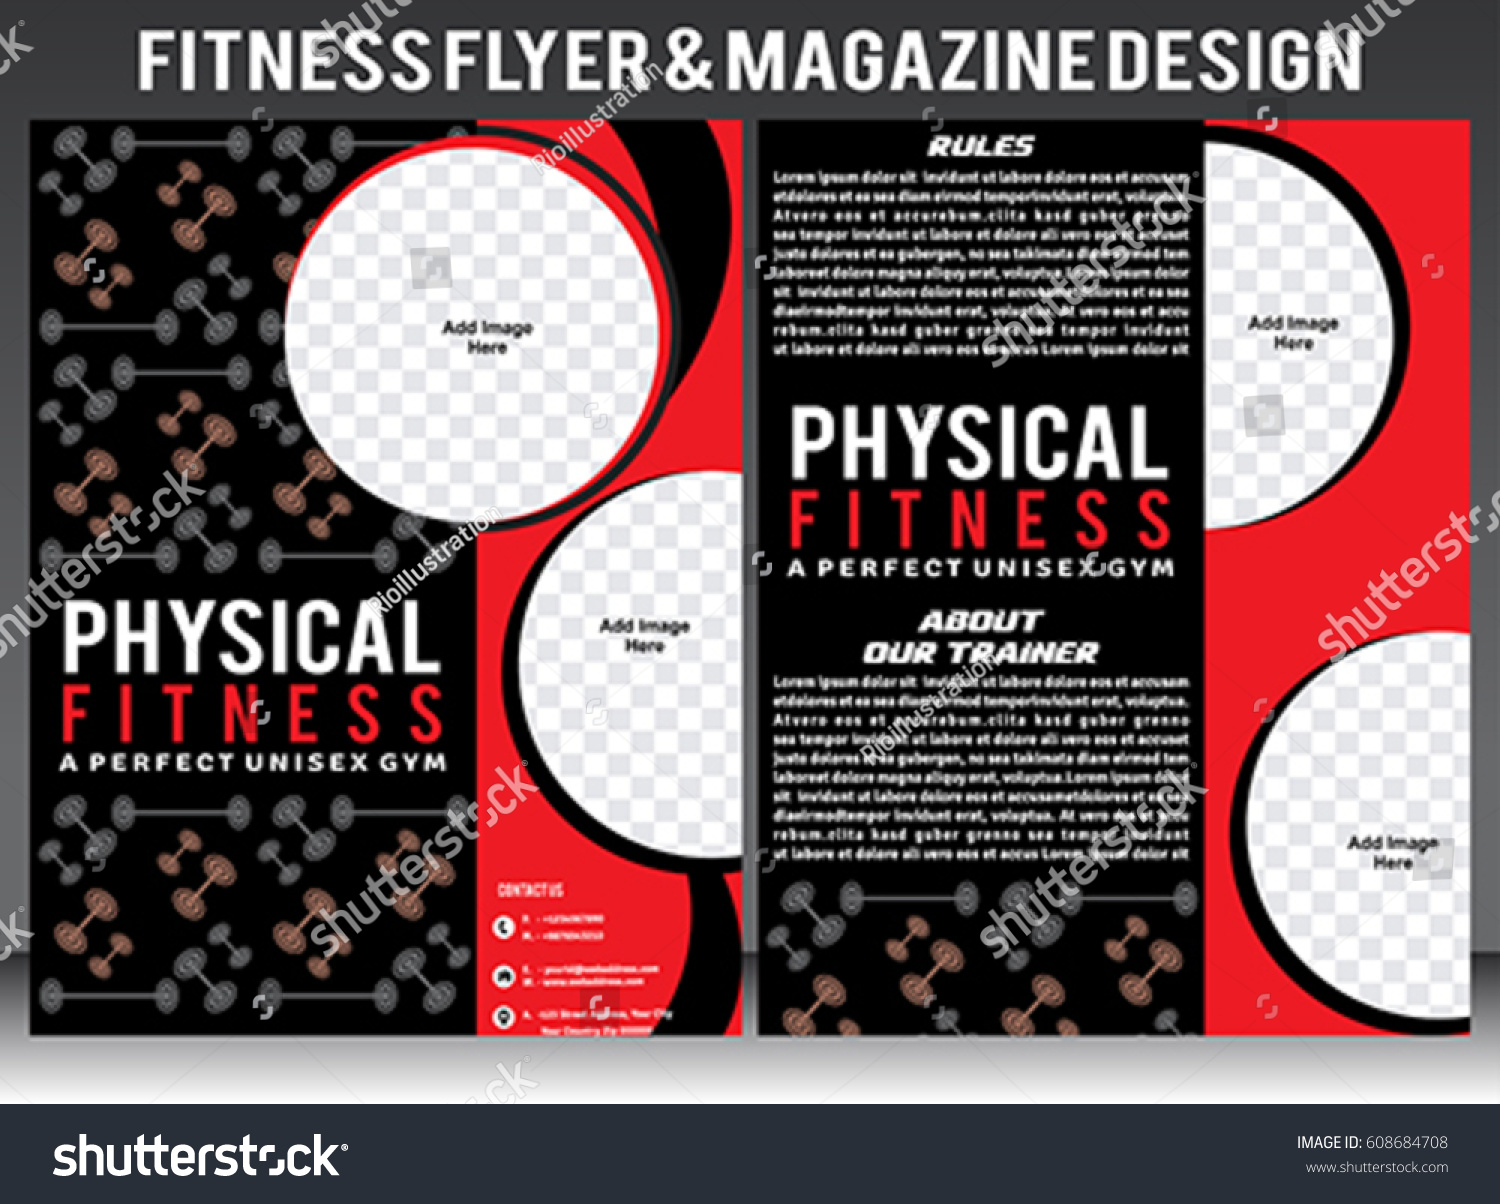 Physical Fitness Flyer Template Magazine Design Stock Vector ... for Physical Fitness Design  35fsj